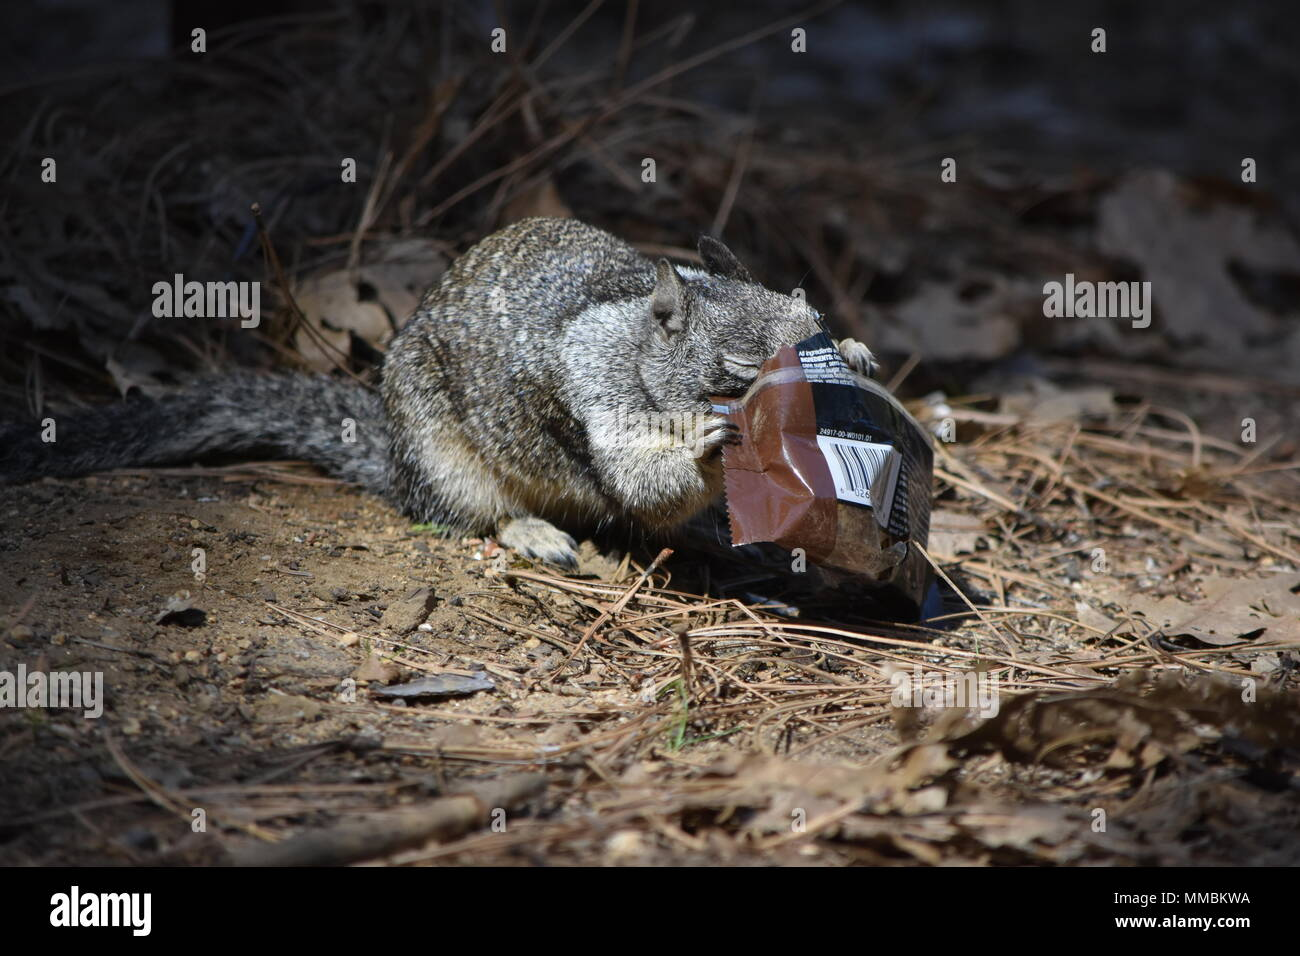 A California Ground Squirrel feasting on a stolen Kind Bar in Lower Pines Campground, Yosemite Valley, CA. - Stock Image